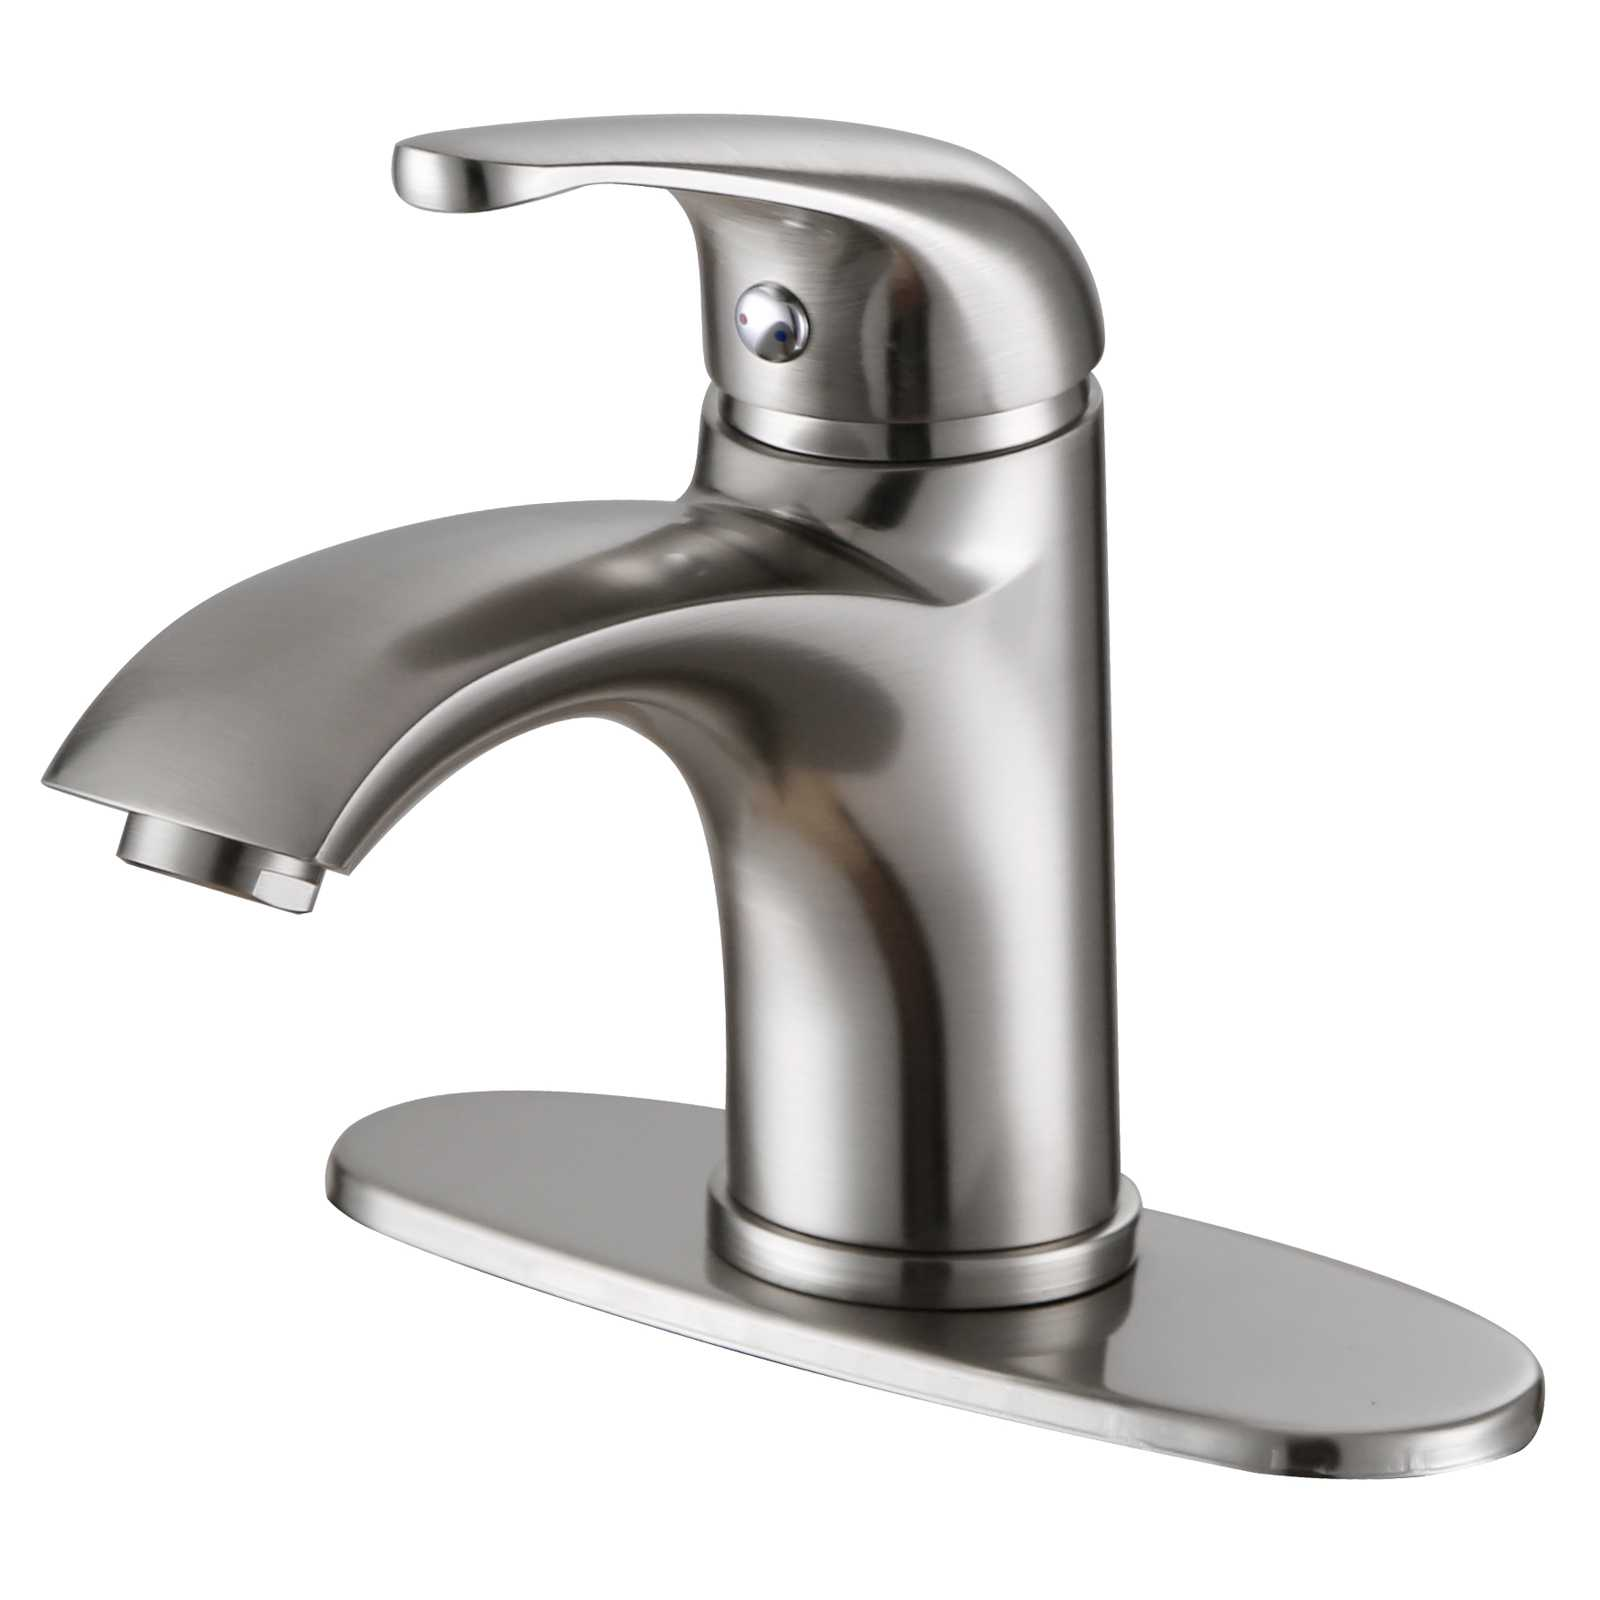 Capricious One Handle Bathroom Faucet 5